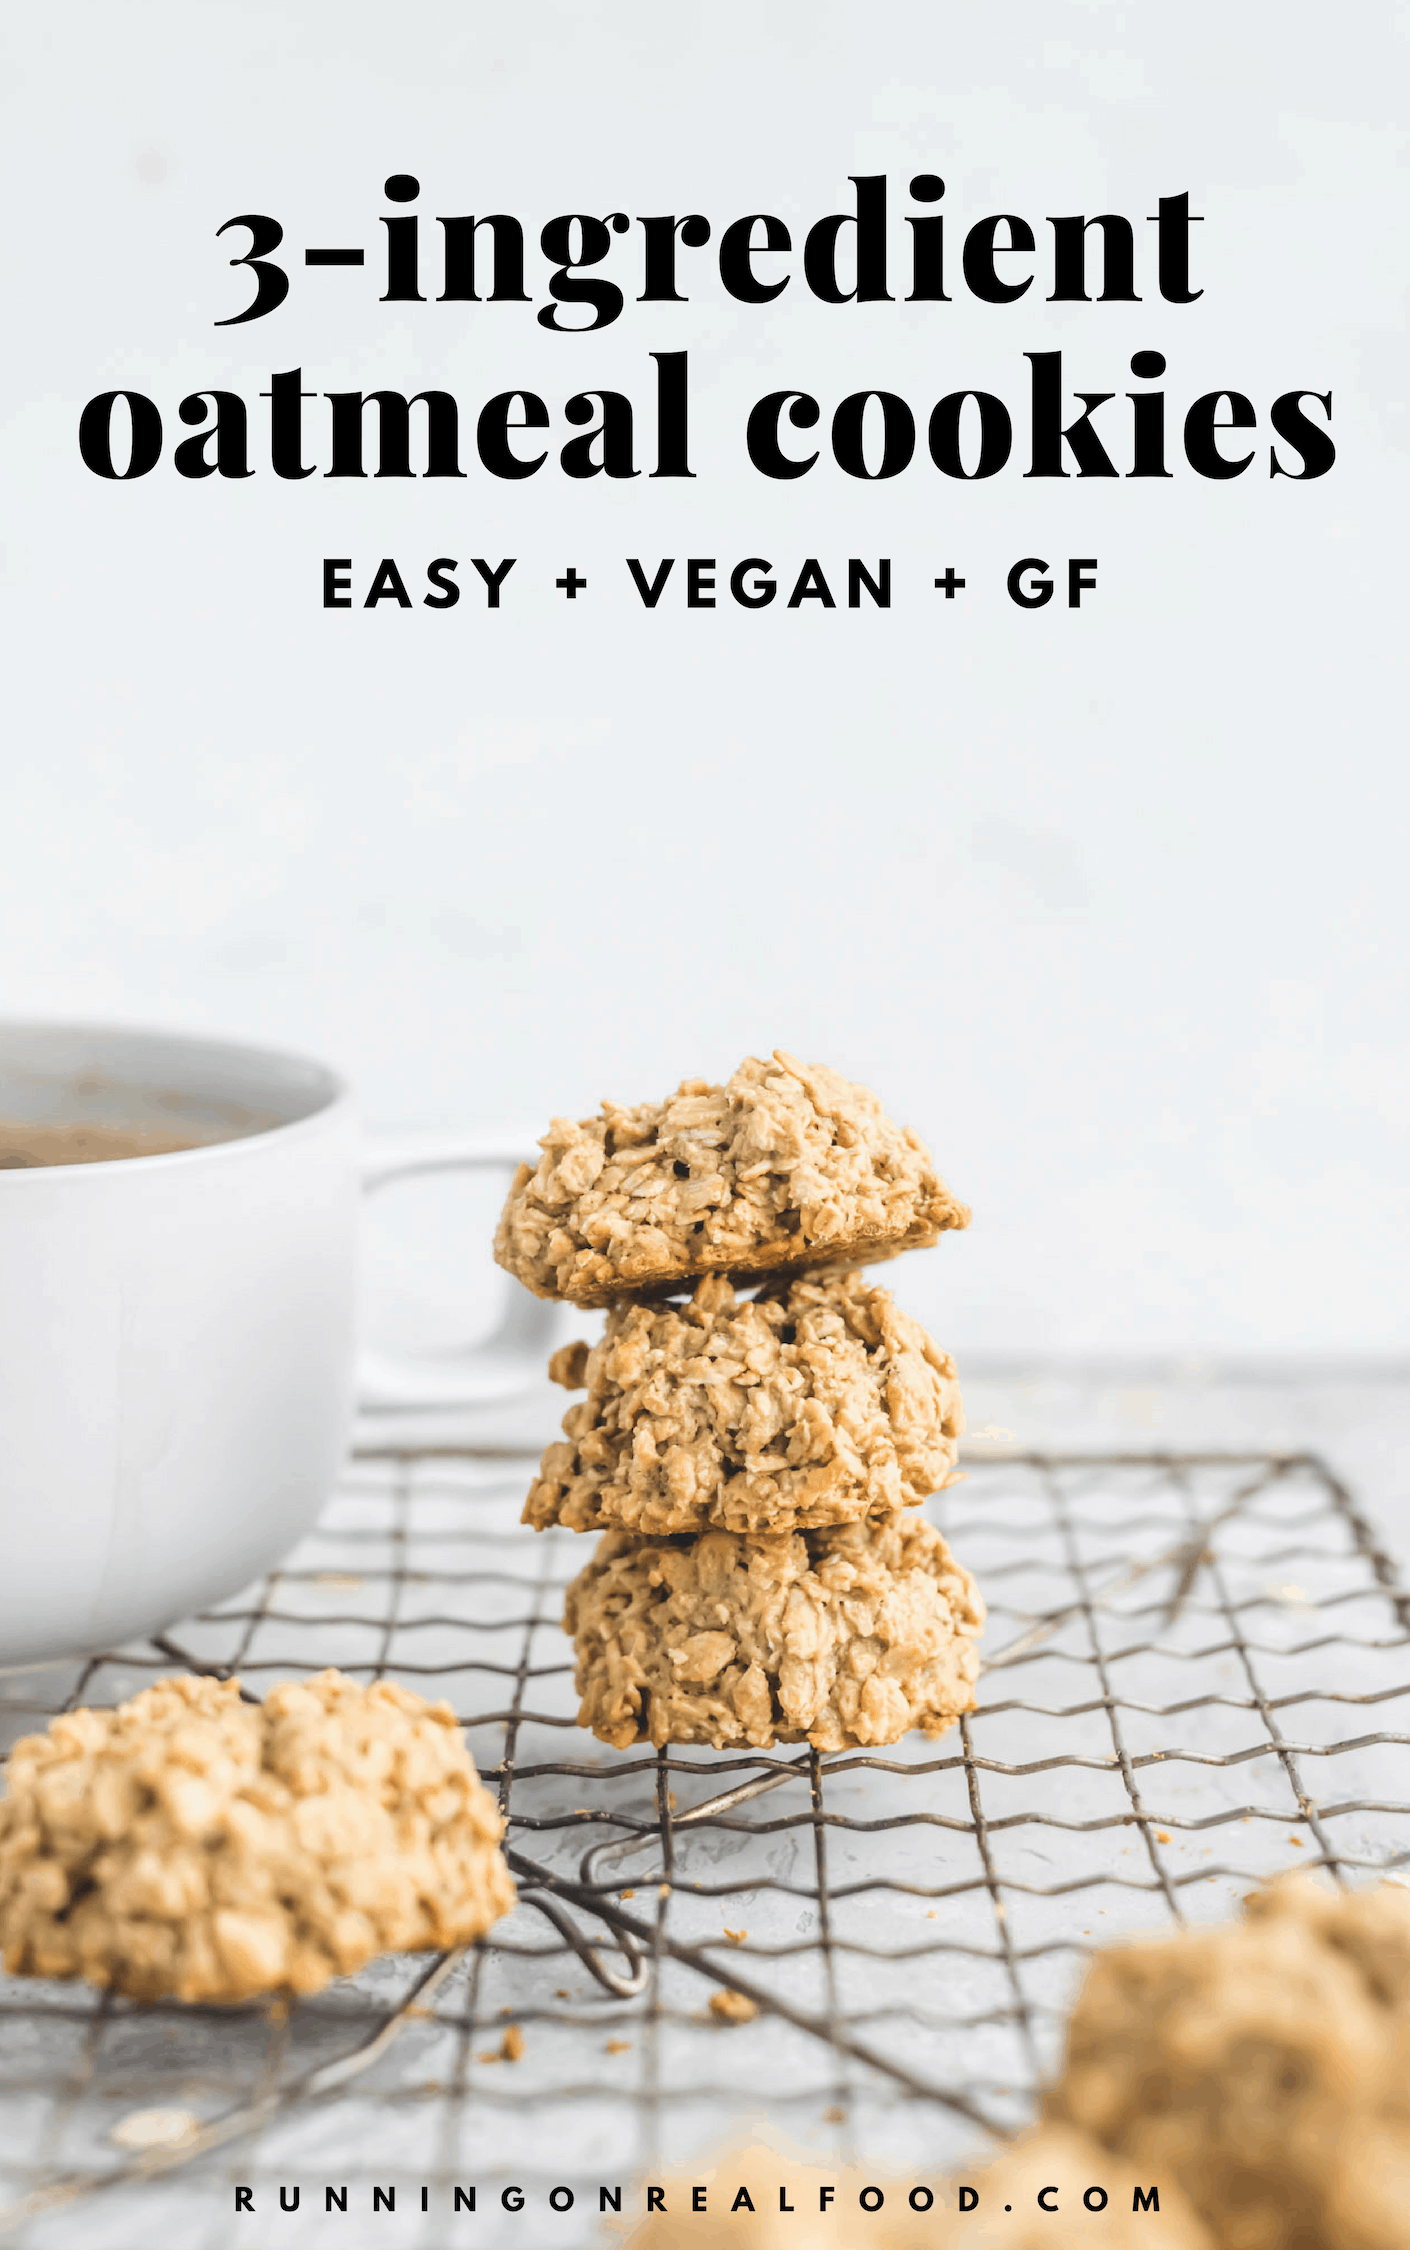 All you need to make these easy vegan 3-ingredient oatmeal cookies is maple syrup, oats and a nut or seed butter of choice! Try them for a delicious, quick and easy vegan dessert.